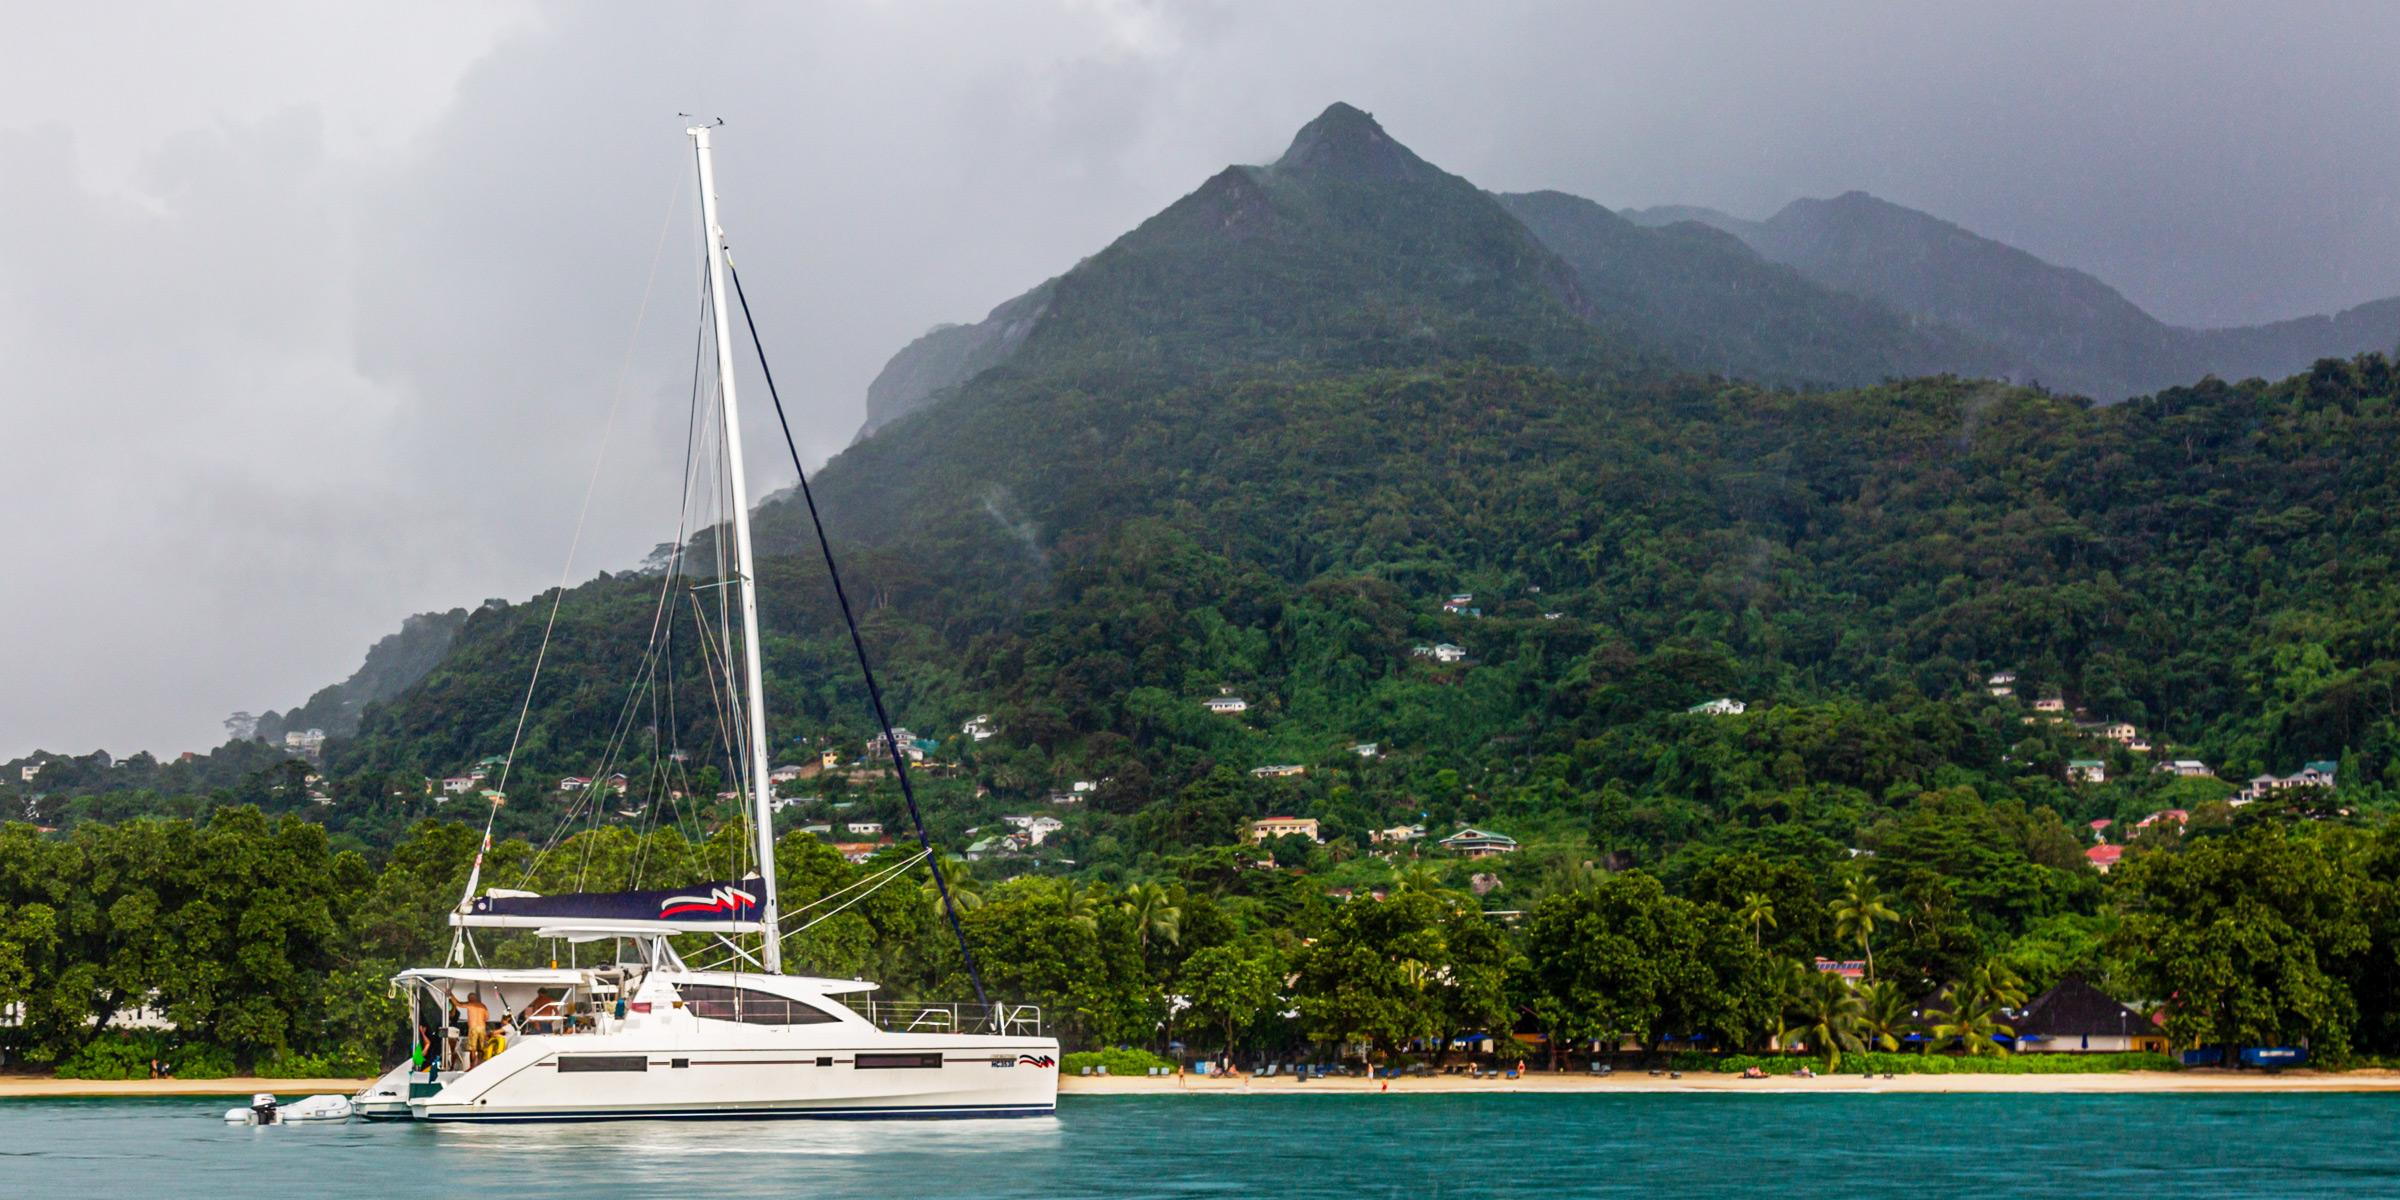 seychelles_moorings4800_anchor_2400x1200_web.jpg